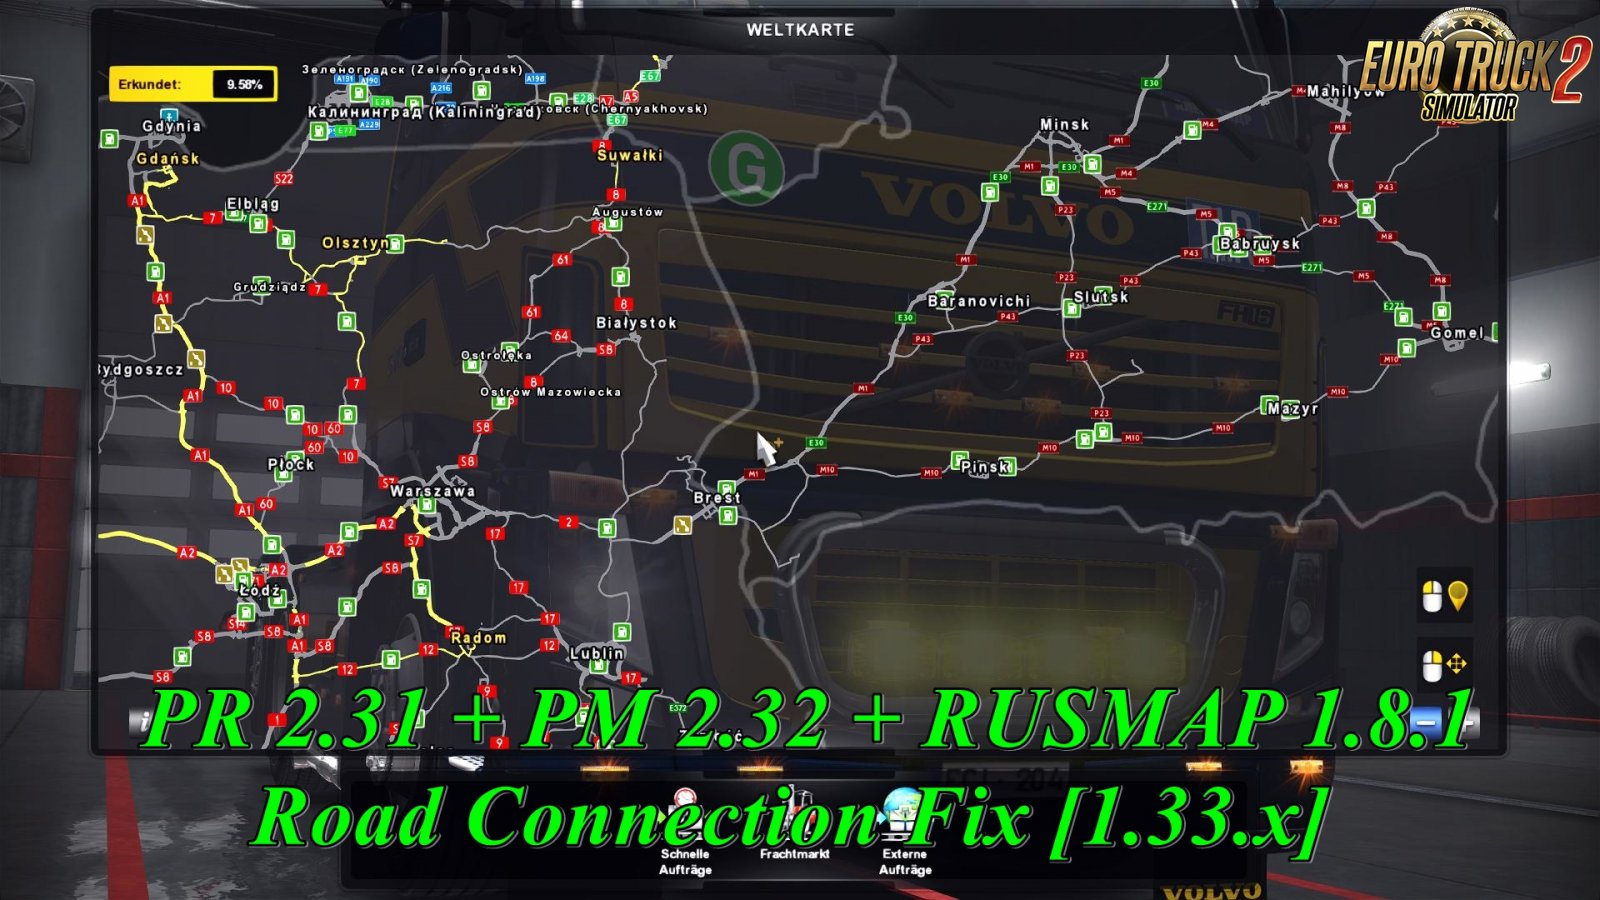 PR 2.31 + PM 2.32 + RUSMAP 1.8.1 Road Connection Fix [1.33.x]